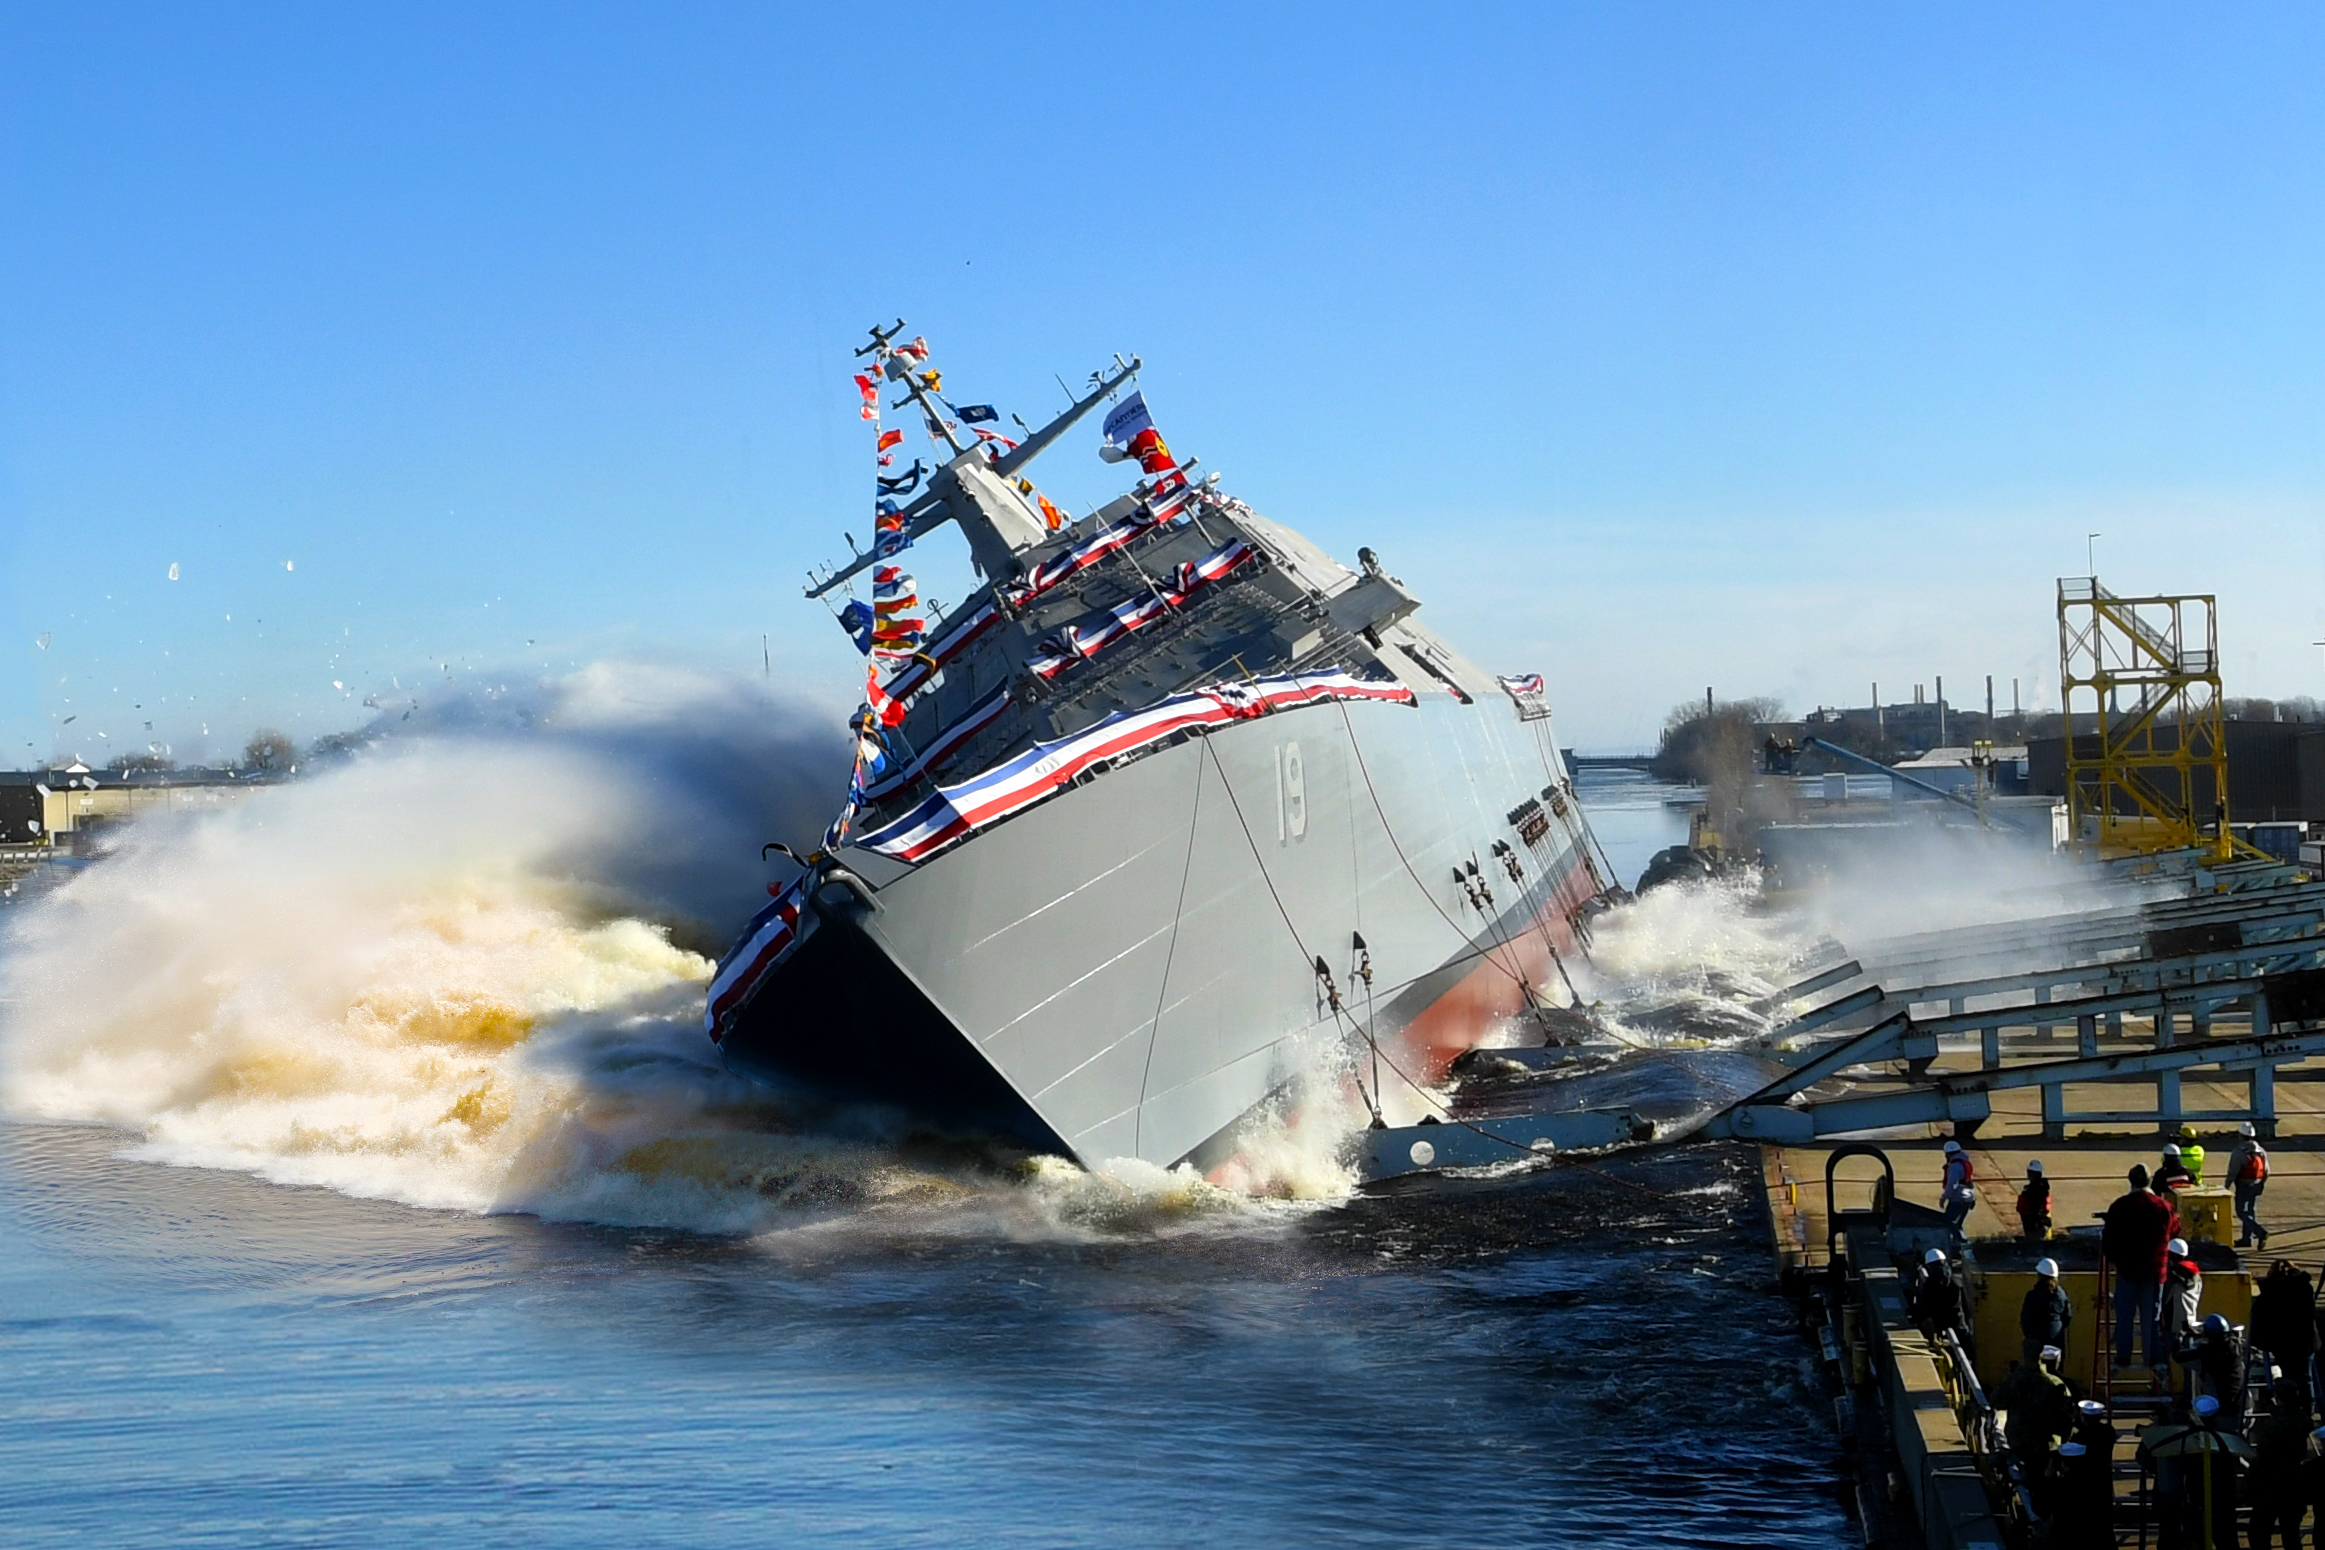 File:Launch of USS St. Louis at Marinette Marine, Wisconsin (USA), on 15  December 2018 (181215-N-N0101-198).JPG - Wikimedia Commons